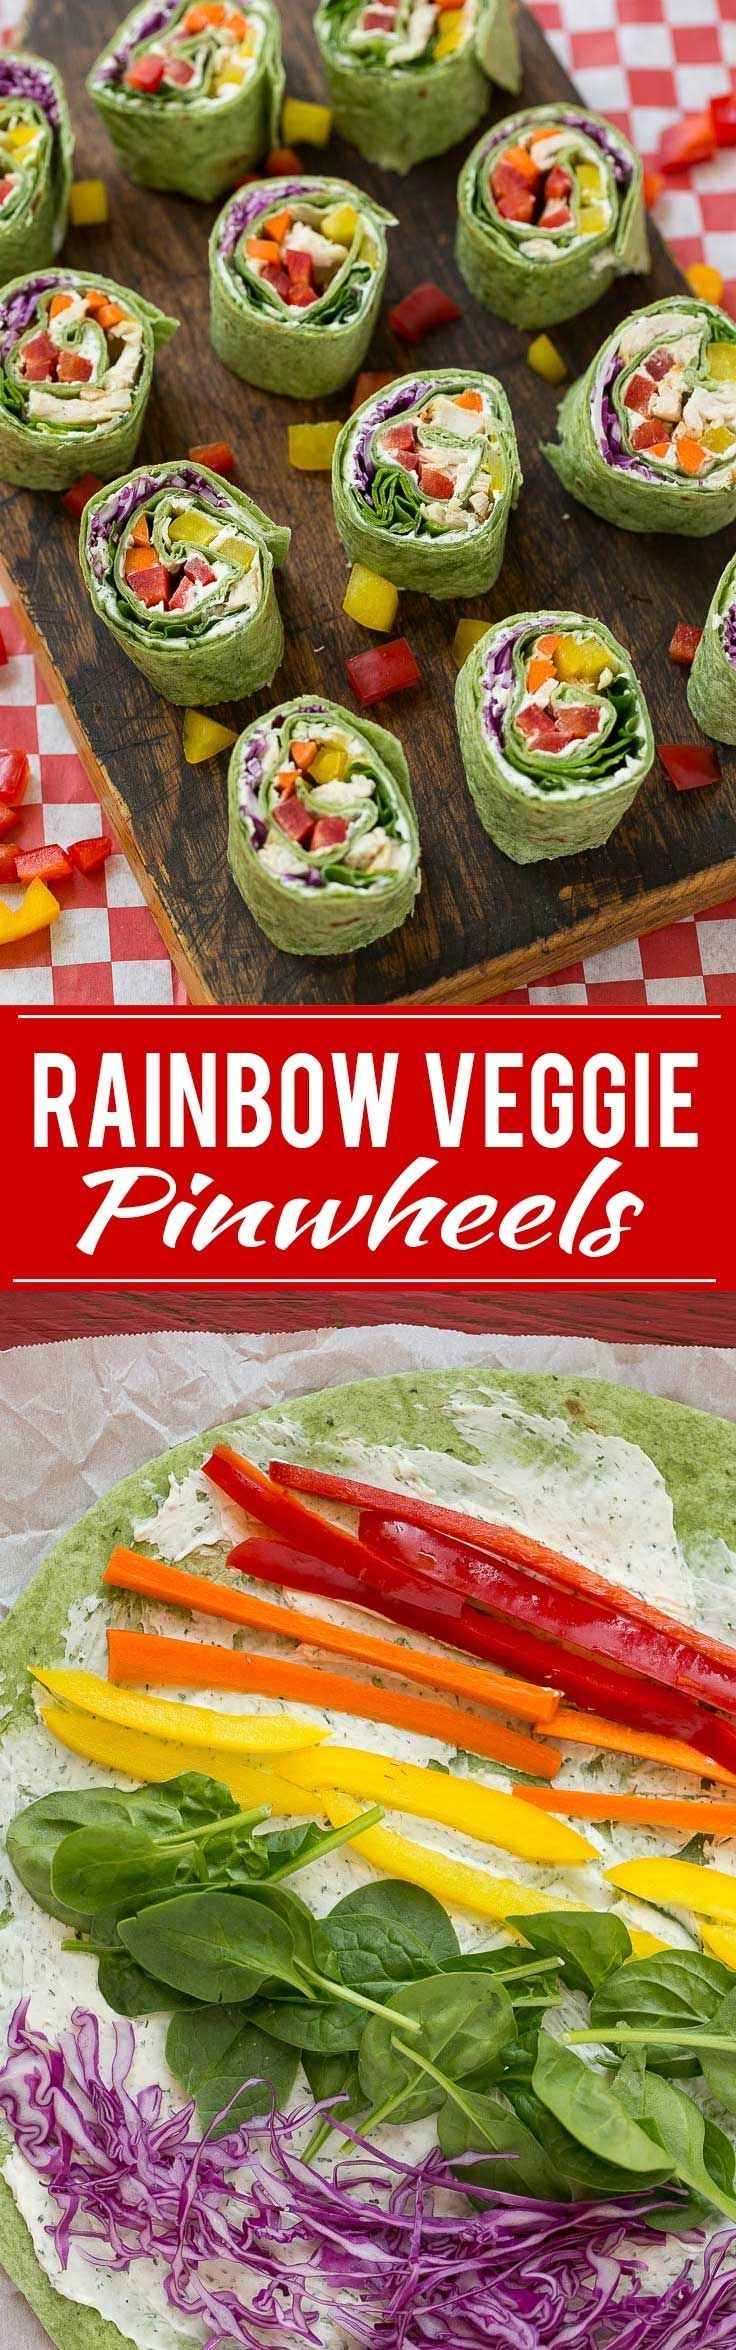 Rainbow veggie pinwheels are made with homemade ranch spread and a variety of fresh veggies for a colorful and healthy lunch, snack or appetizer. Ad #weightlossmotivation